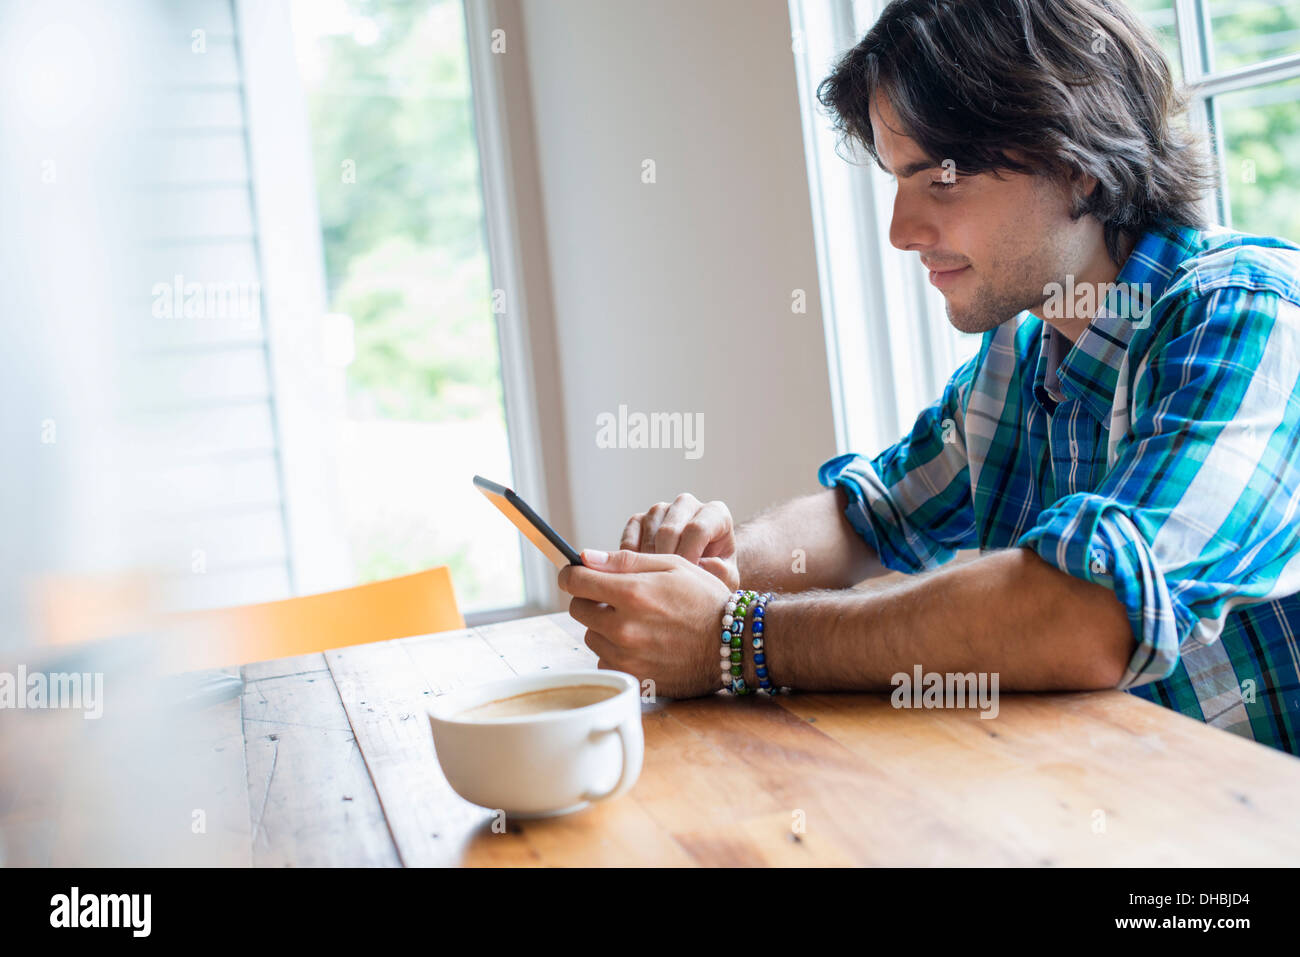 A man sitting in a cafe with a cup of coffee. Using a digital tablet. Stock Photo